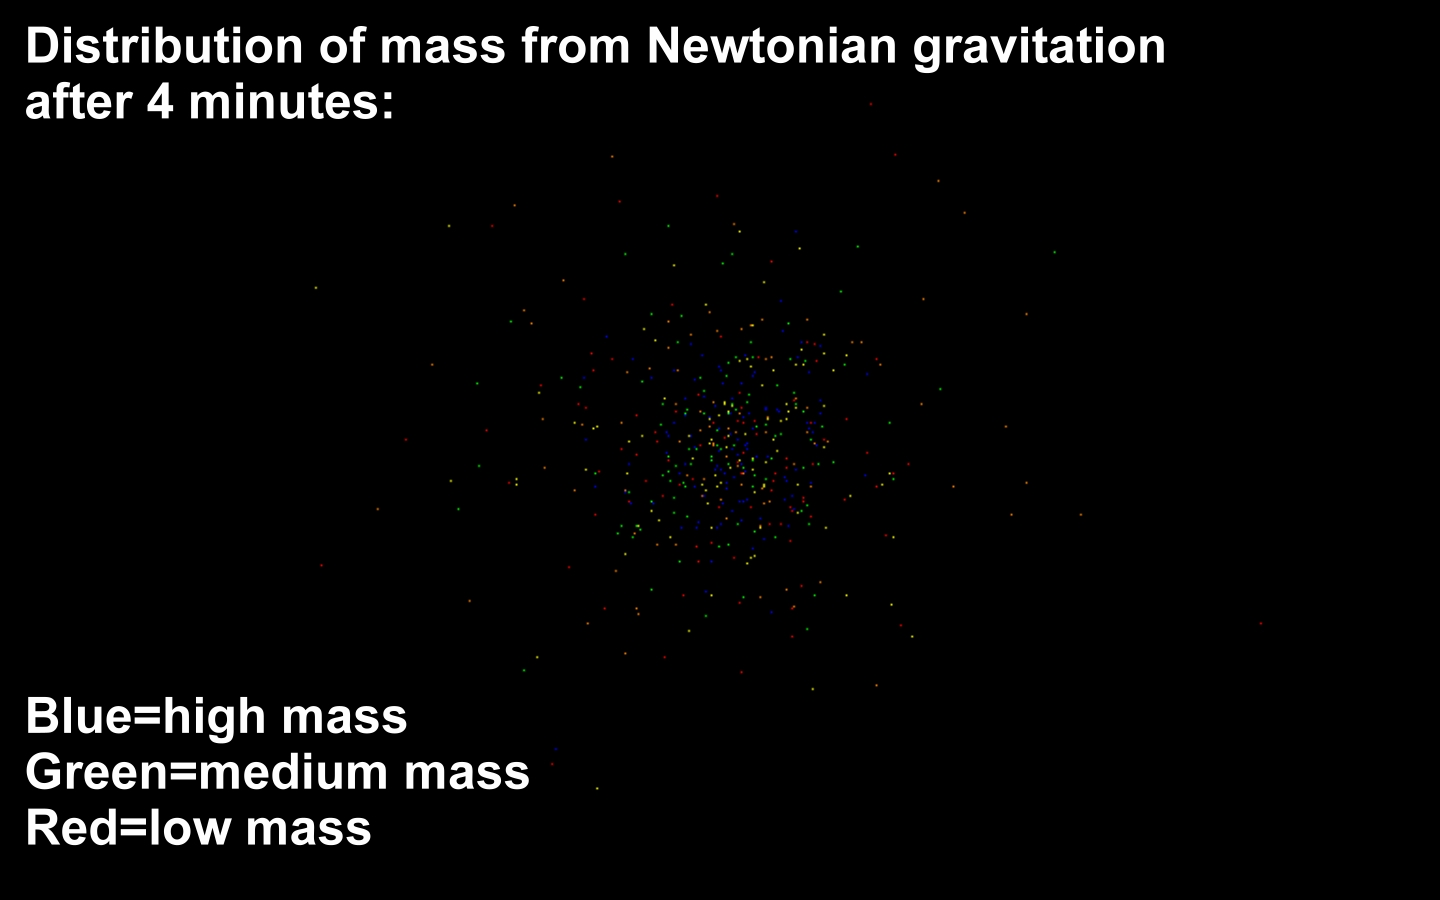 Universe Life Science Future 06 19 2012 Tammia Bb 21 Fusion Blending Sponge Black 1 Distribution Of Mass From Newtonian Gravitation After 4 Minutes Bluehigh Greenmedium Redlow Gnu Source Ted Huntington